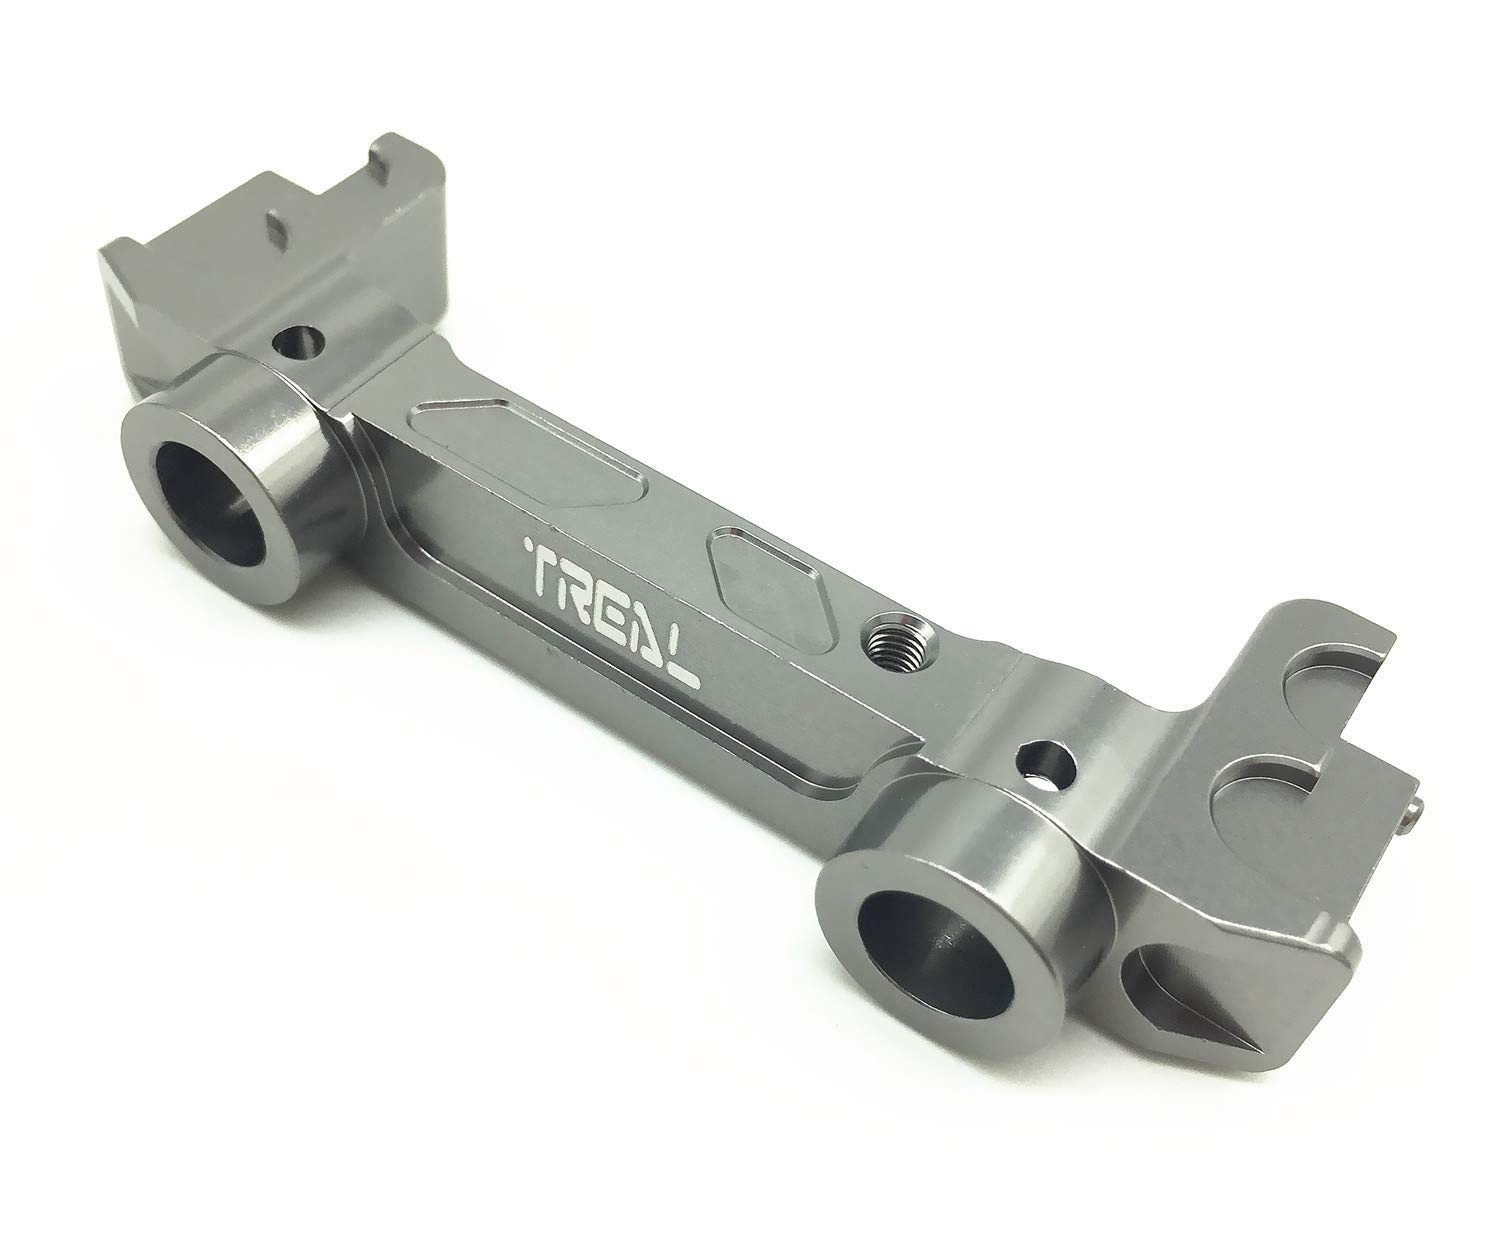 Treal Alloy Front Bumper Mount for Axial SCX10 II RC Car Red